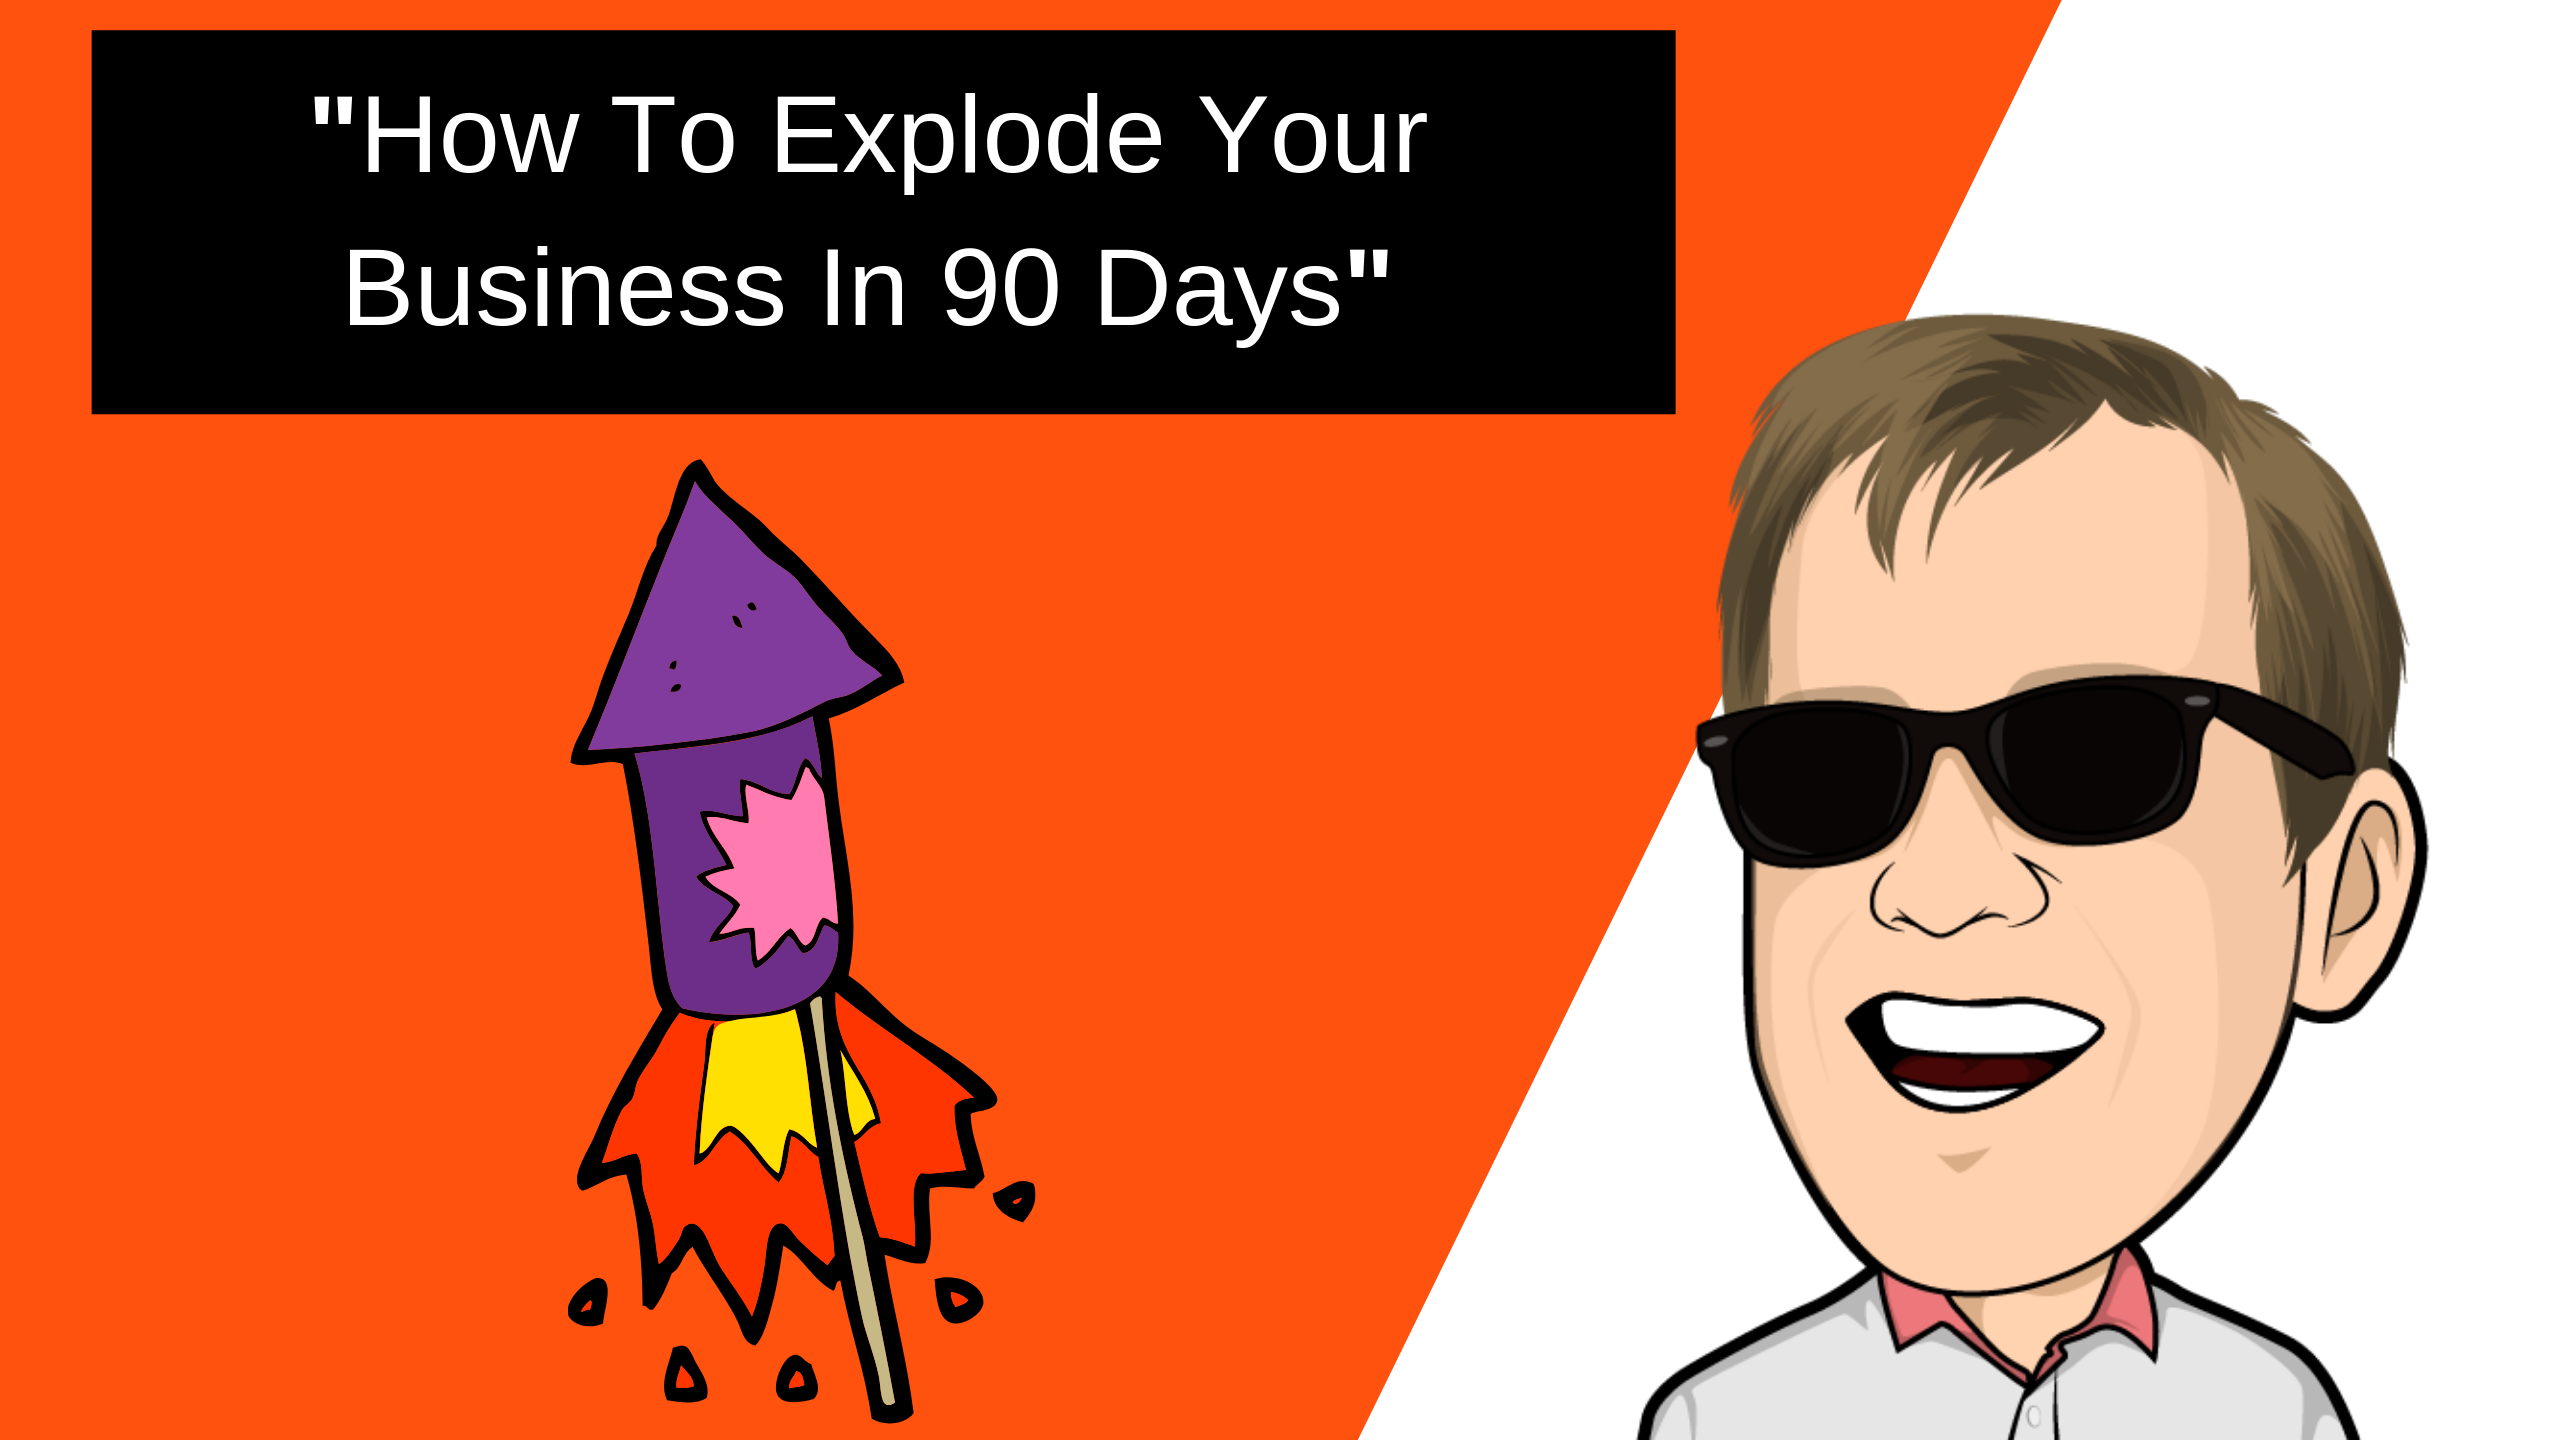 How to easily add $50k in profit per month to your business starting immediately with no additional work